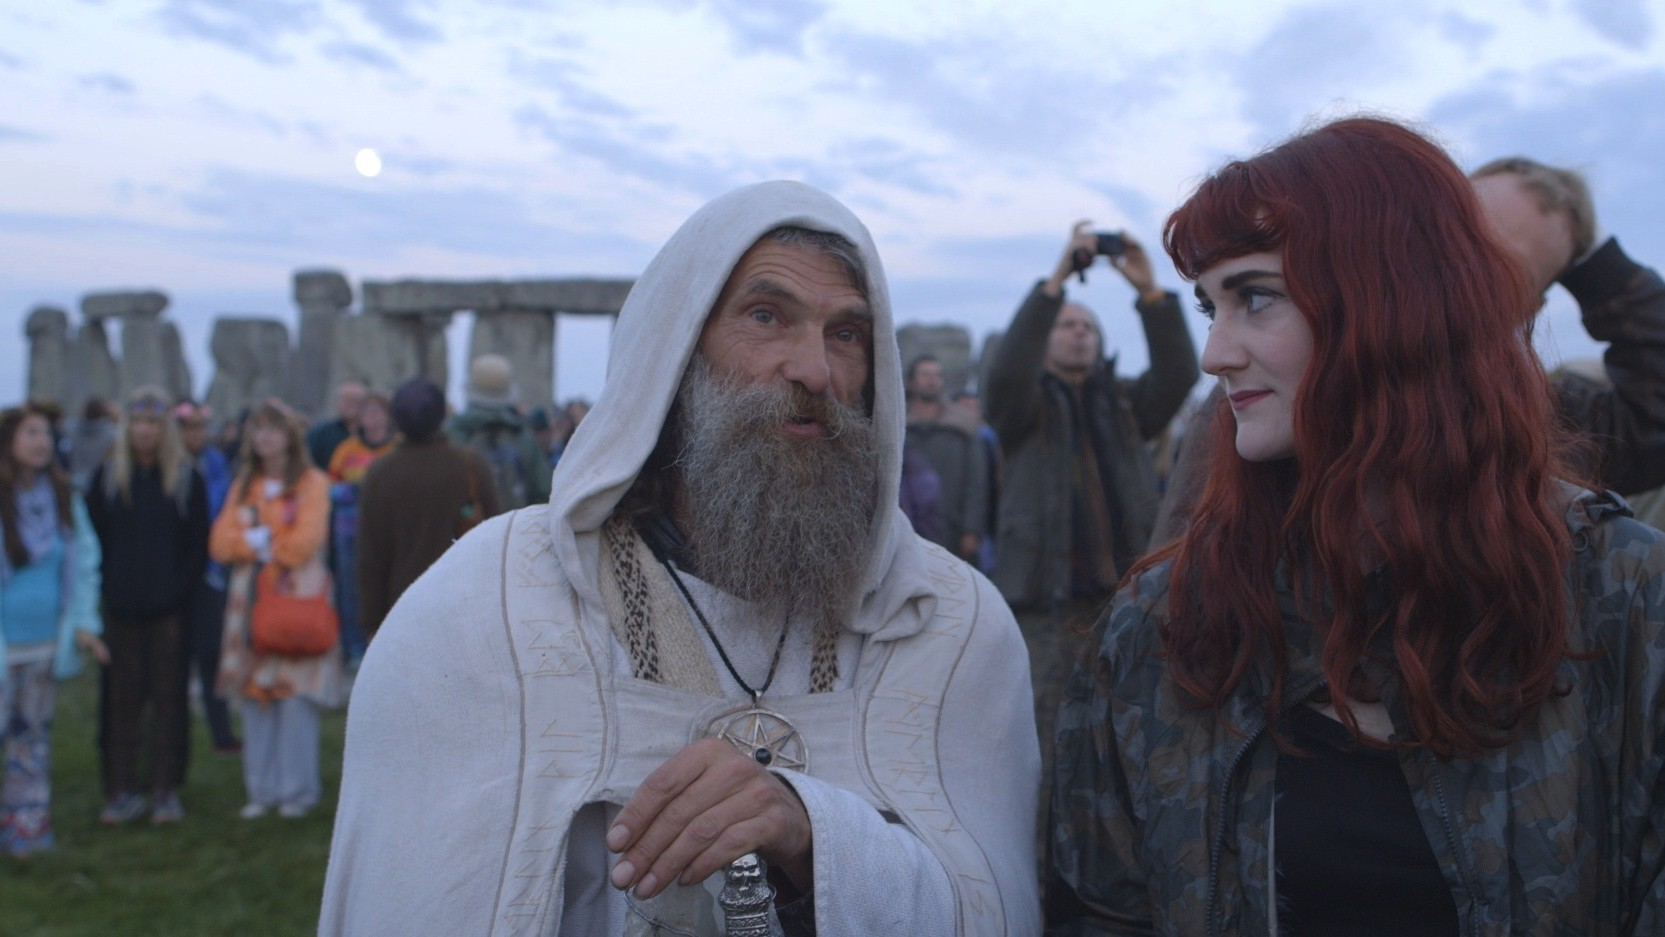 Stonehenge Stoners and Worshipping Wizards: 12 Hours at the World's Biggest Pagan Party